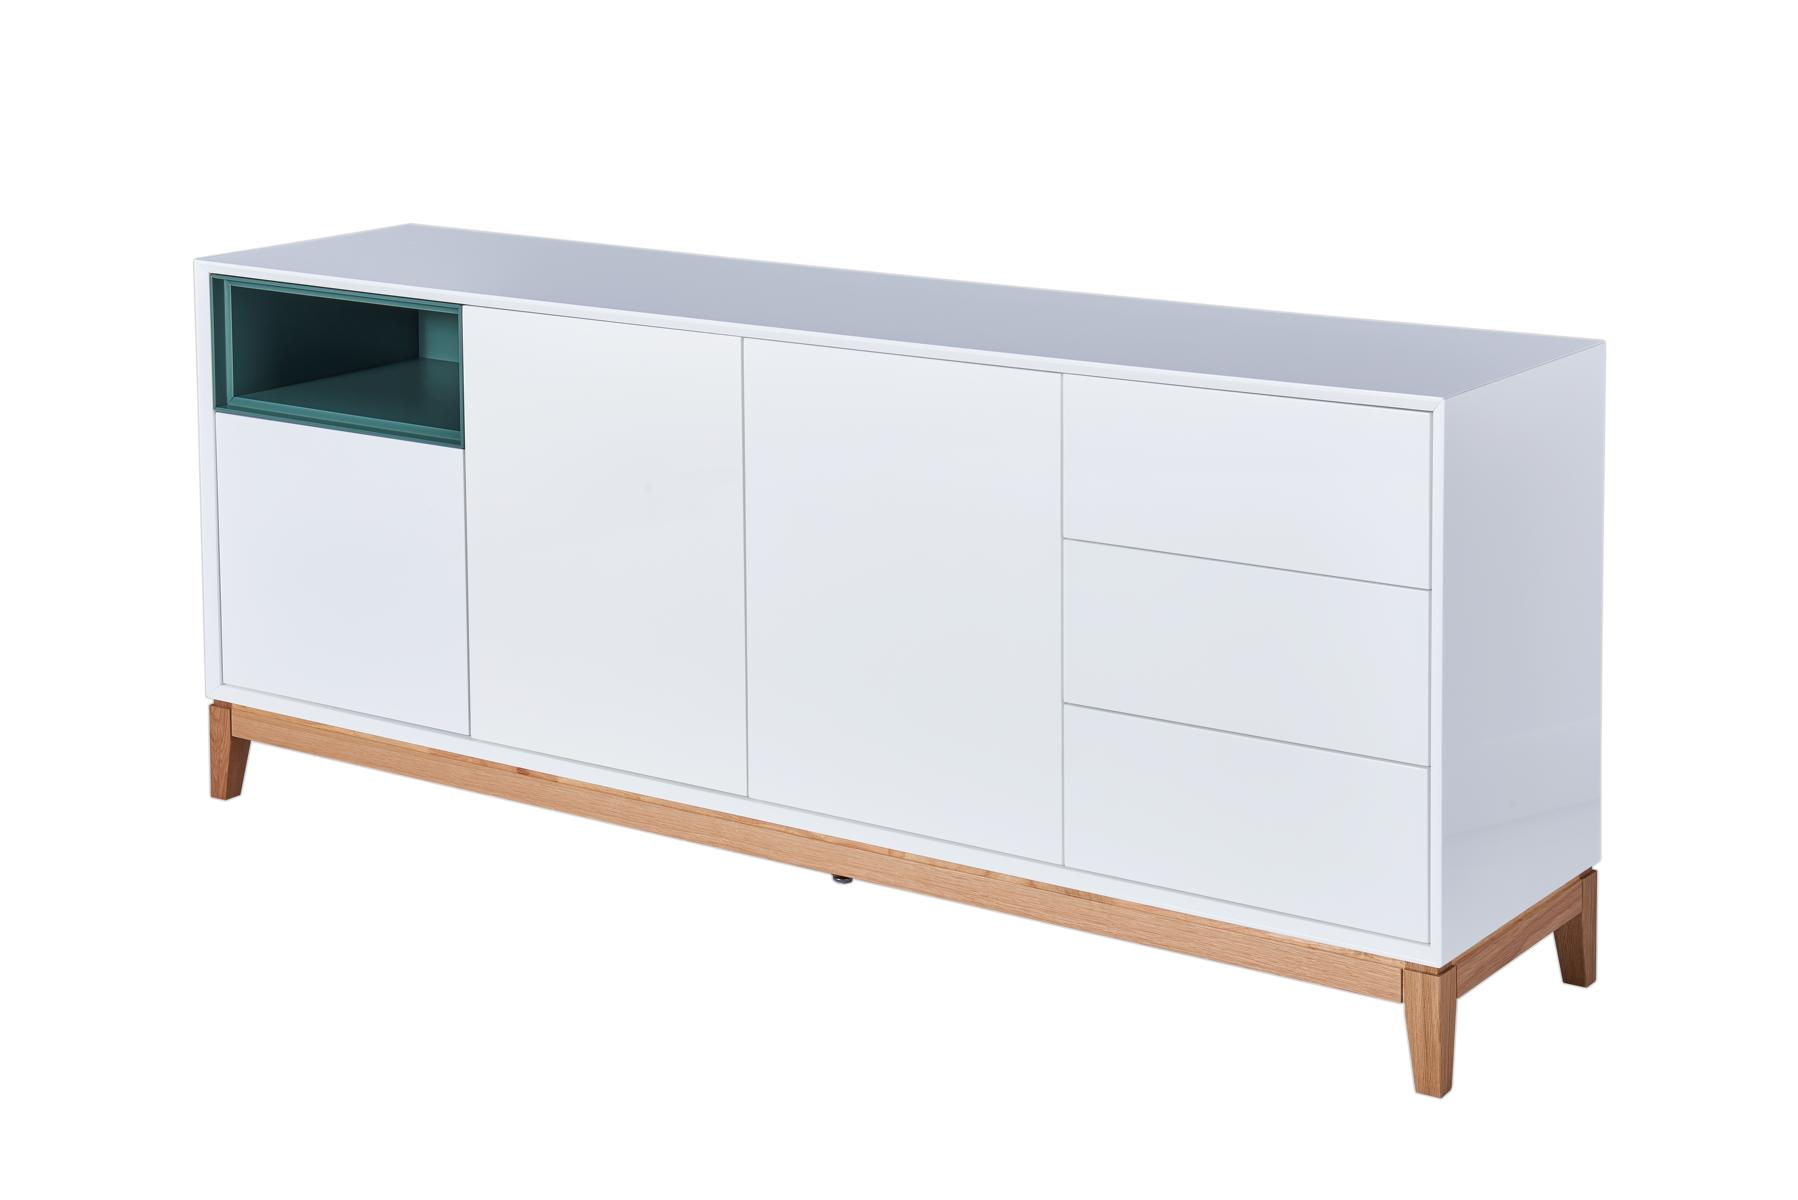 sideboard hegra kommode im skandinavischen design grau gr n wei hochglanz gestell aus eiche. Black Bedroom Furniture Sets. Home Design Ideas